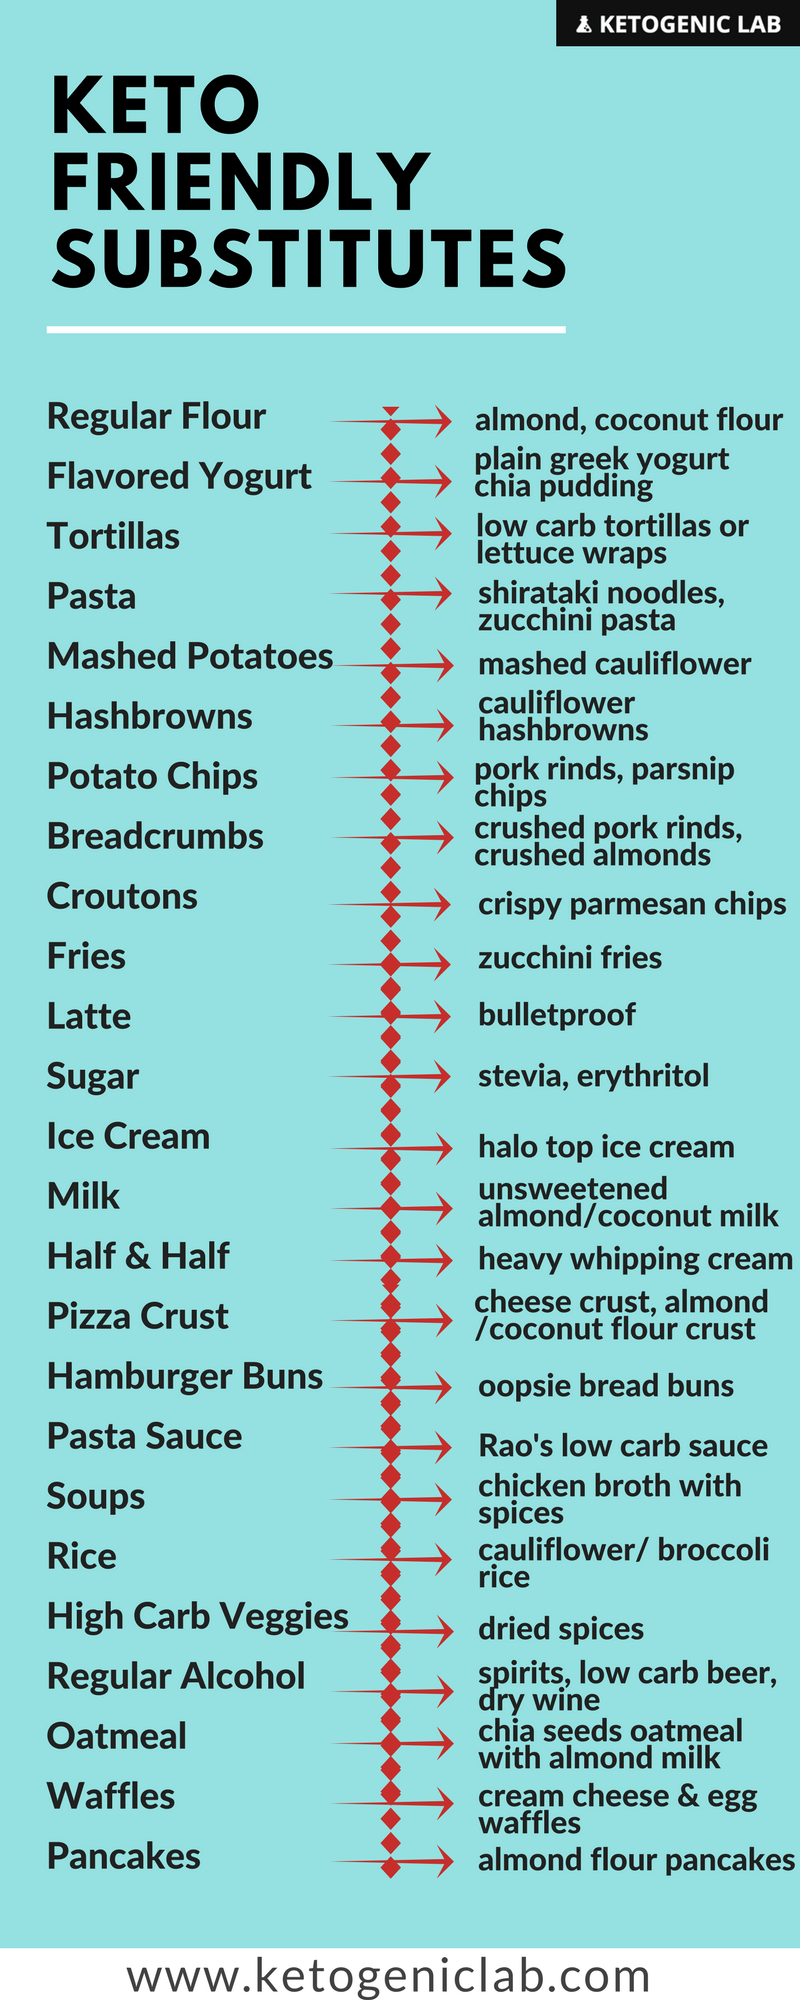 keto friendly substitutes | KETOGENIC BOARD | Pinterest | Keto, Low ...